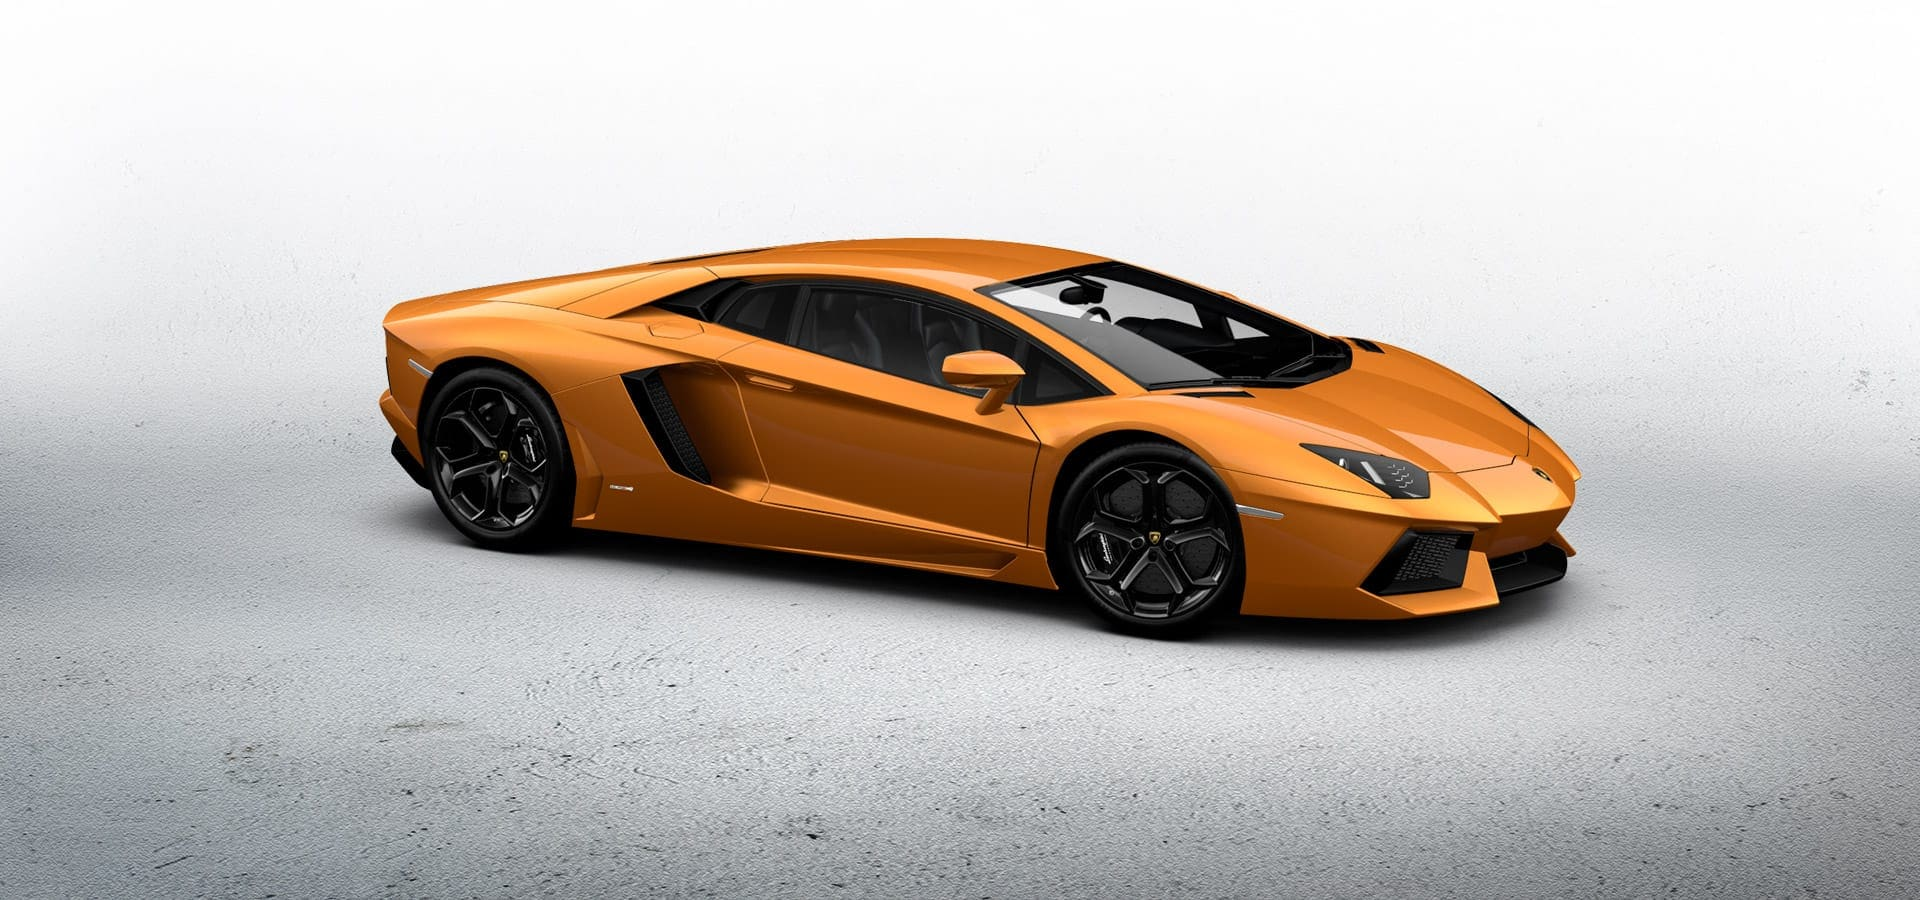 Lamborghini Aventador Coupè - Technical Specifications ...